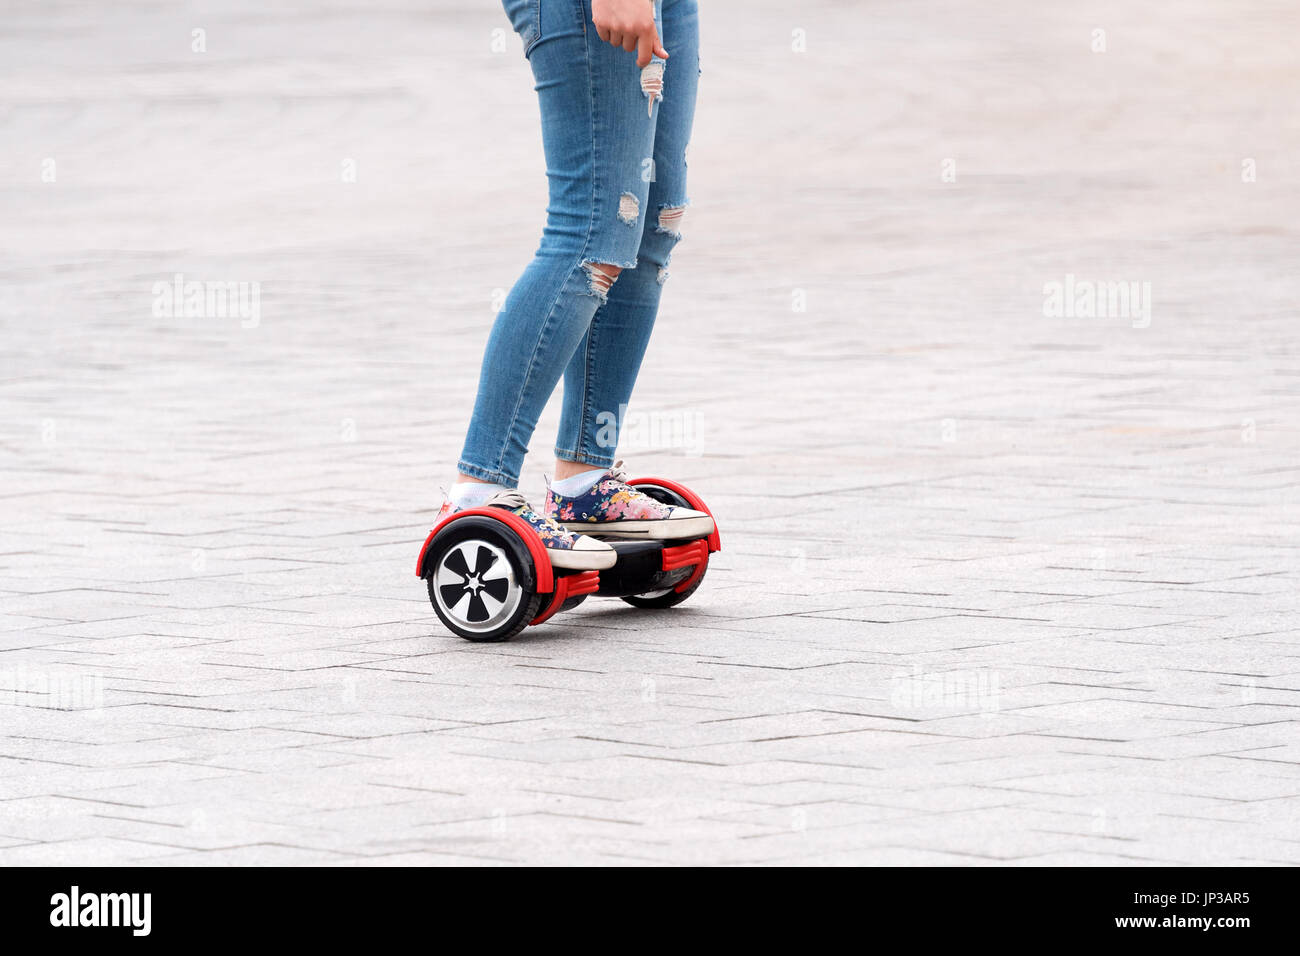 Self Balancing Scooter Stock Photos & Self Balancing ...